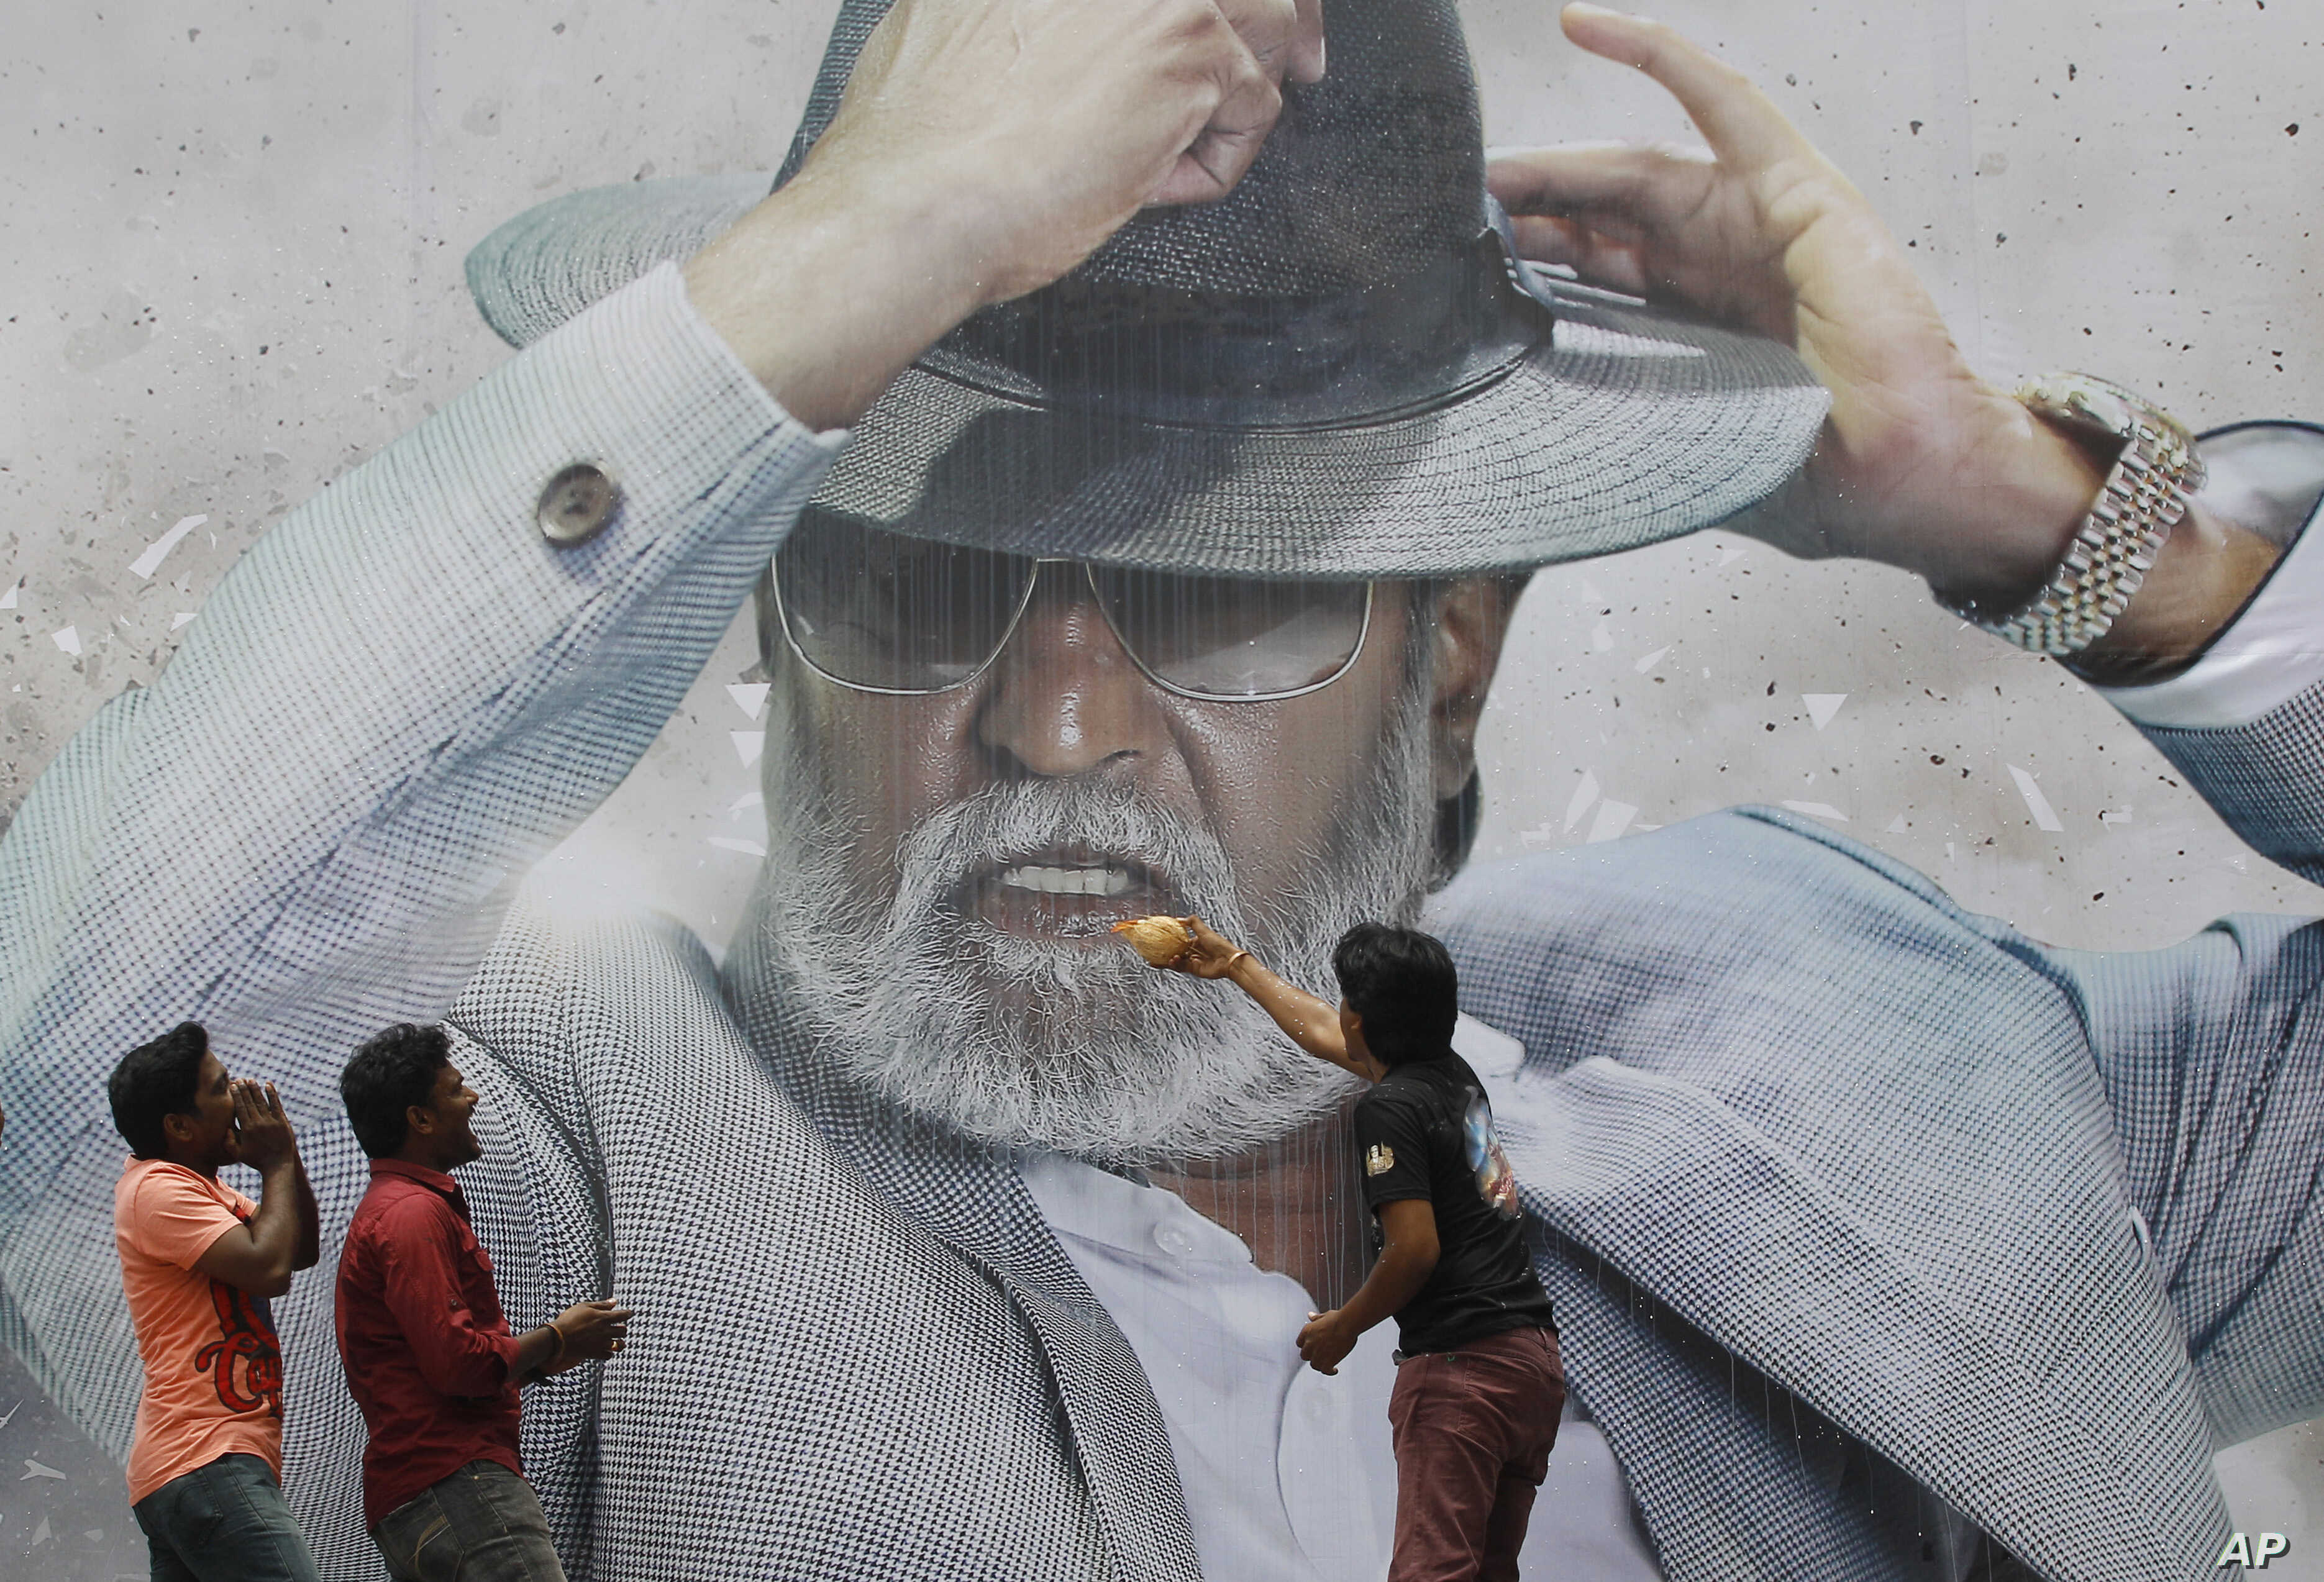 Holiday in Parts of India as Fans Revel in Rajinikanth Film | Voice